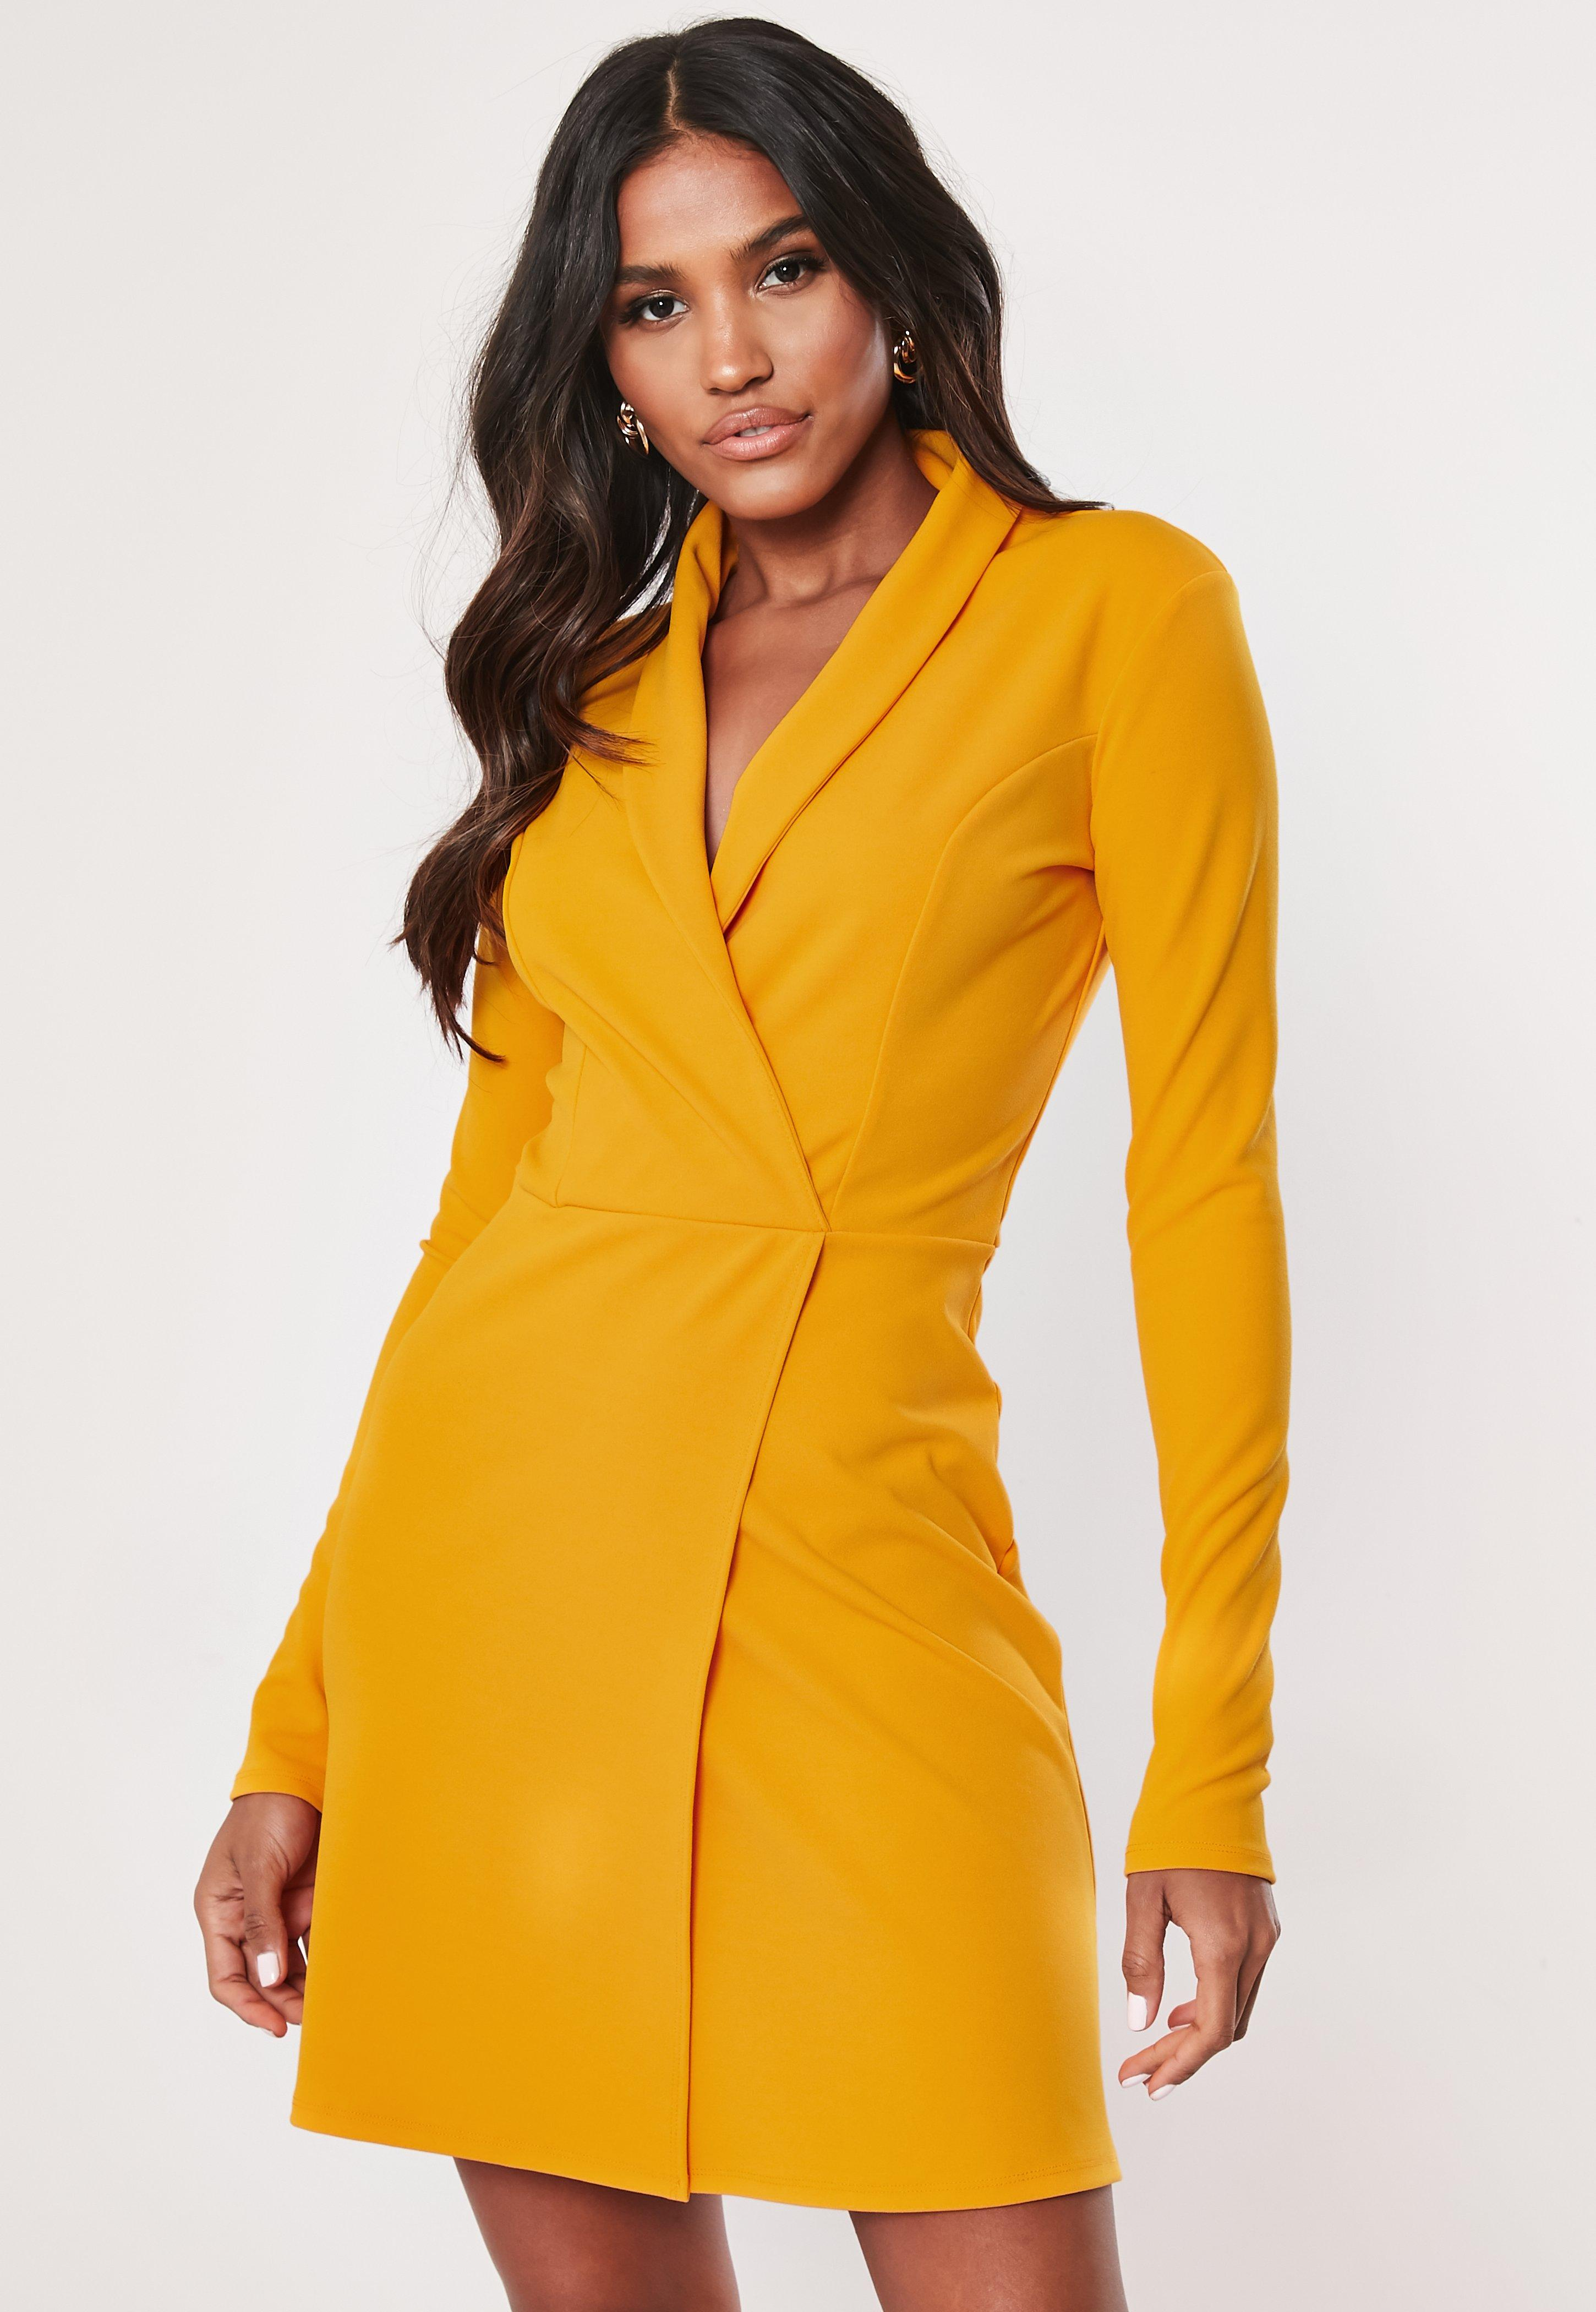 2e89869074c8 Yellow Dresses - Mustard & Chartreuse Dresses | Missguided